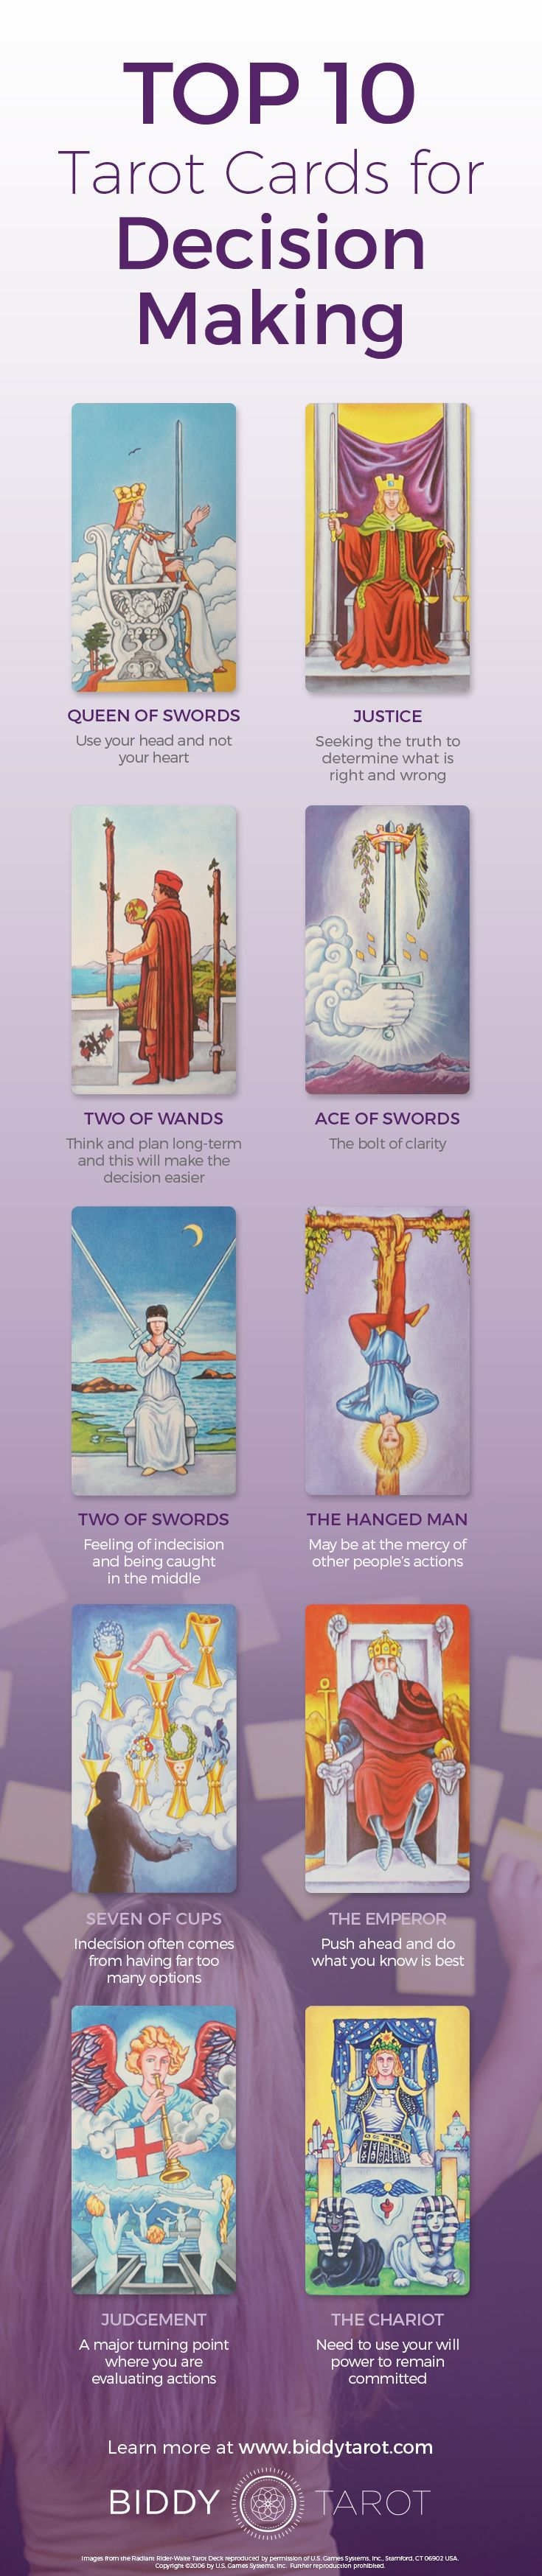 We all know what it's like to have to make a really tough #decision. If you're faced with too many choices, pay attention to these #Tarot cards in your reading. Download your free copy of my Top 10 Tarot Cards for love, finances, career, life purpose and so much more at https://www.biddytarot.com/top-ten-cards-ebook/ It's my gift to you!